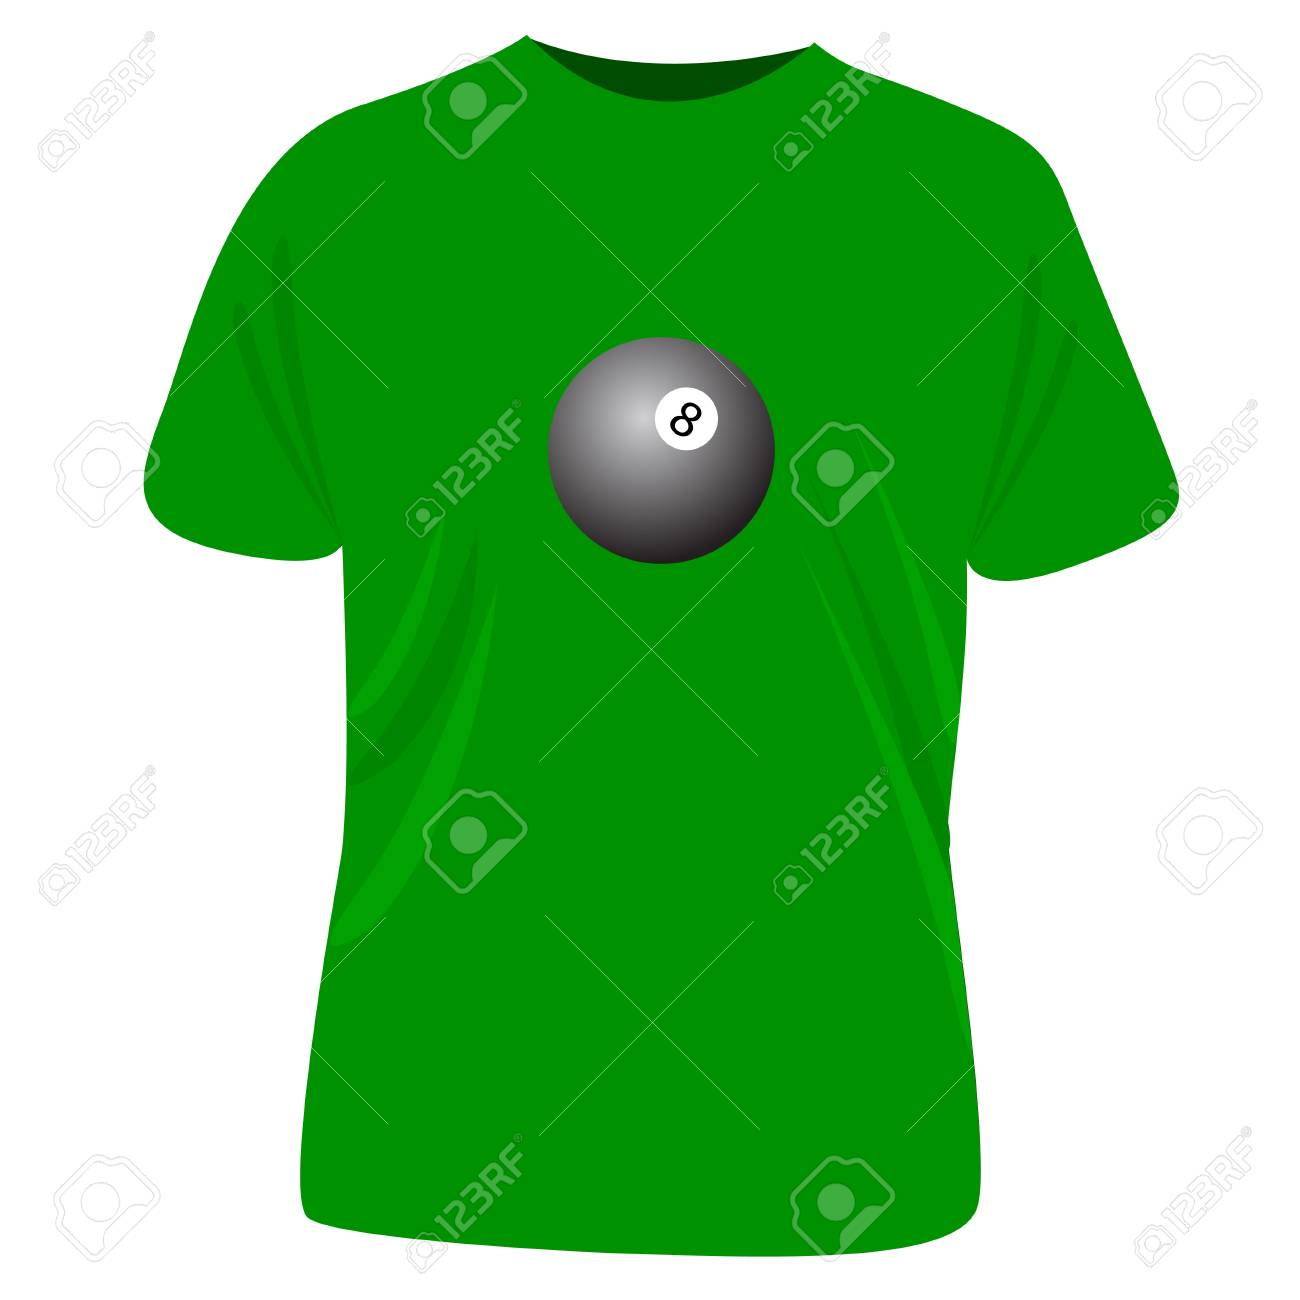 Pool t-shirt Stock Vector - 7233052